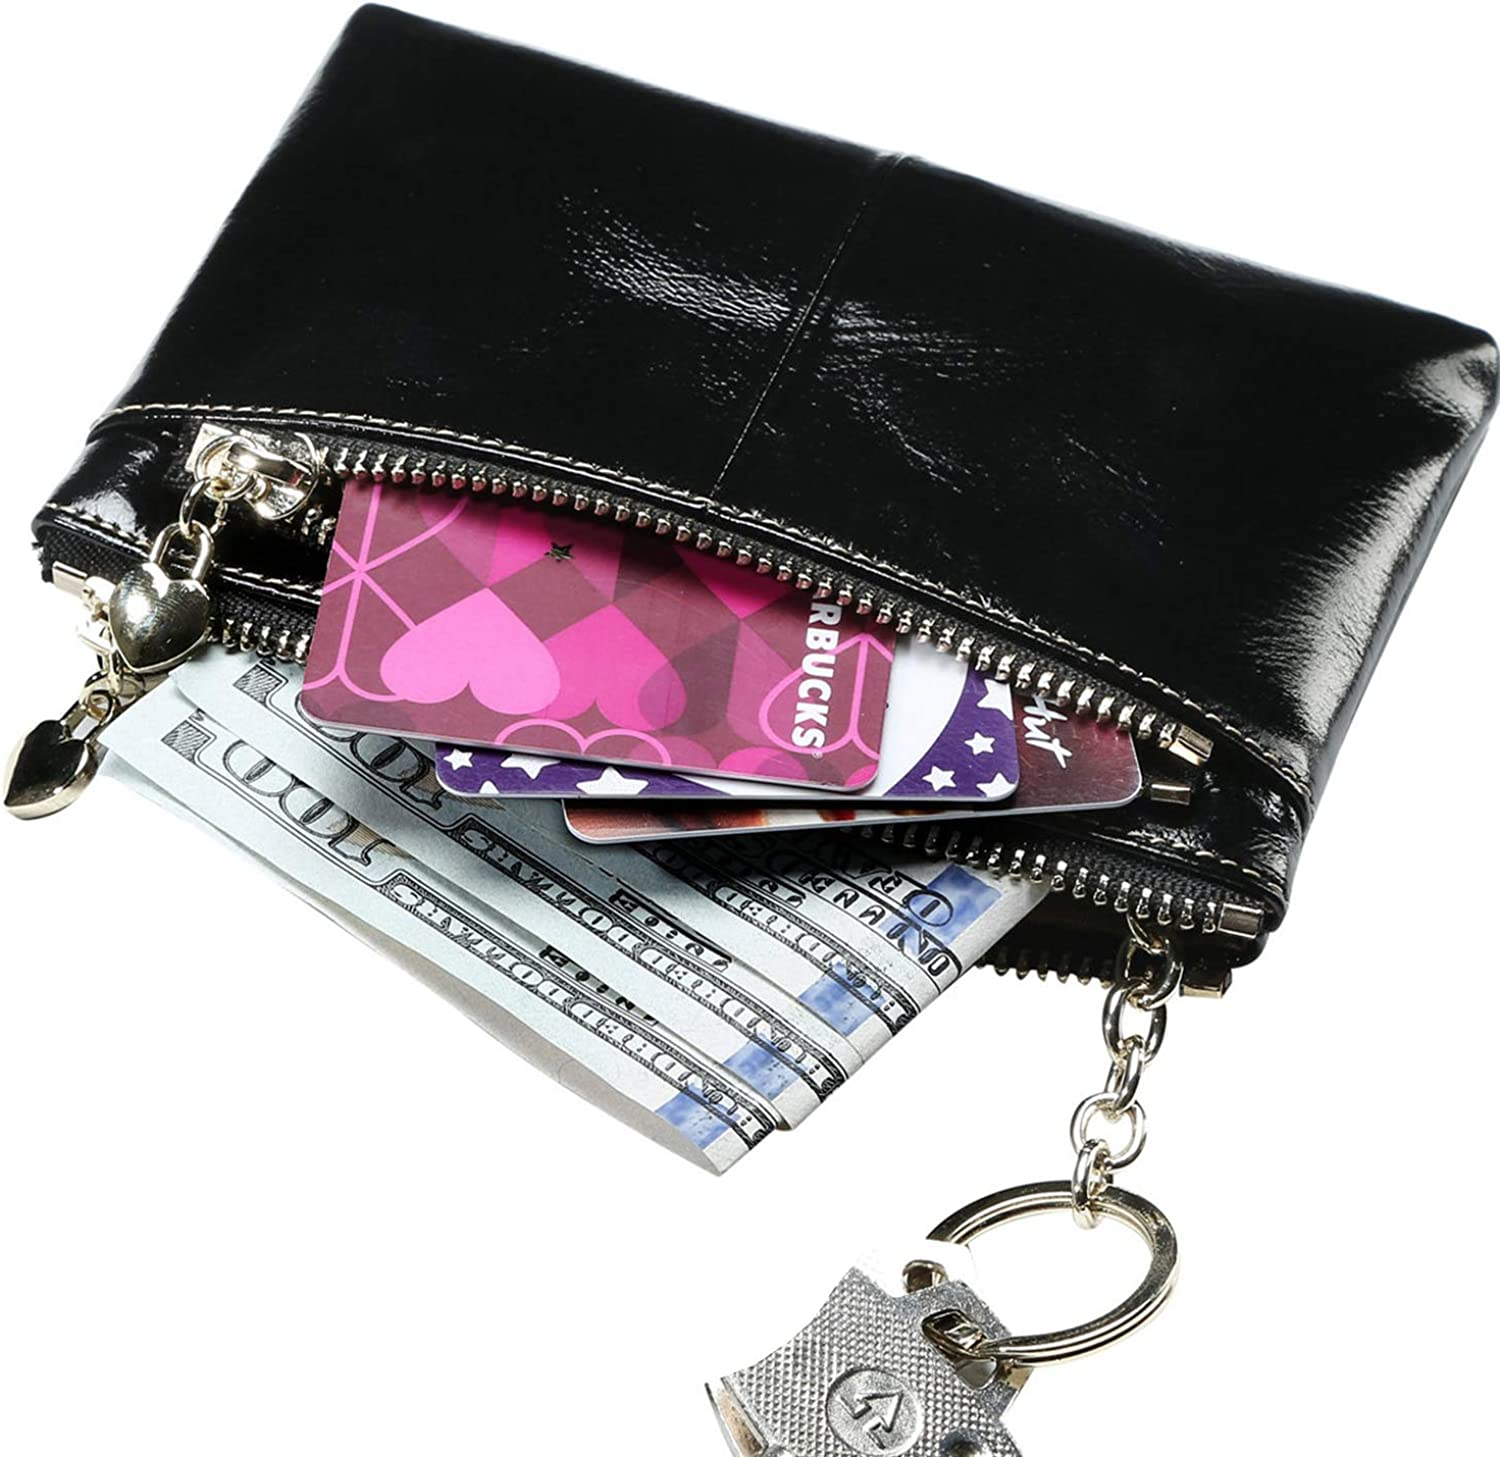 Itslife Small Women's Wallet Zipper Change Coin Purse RFID Card Cases Genuine Leather Wallets for women with key chain